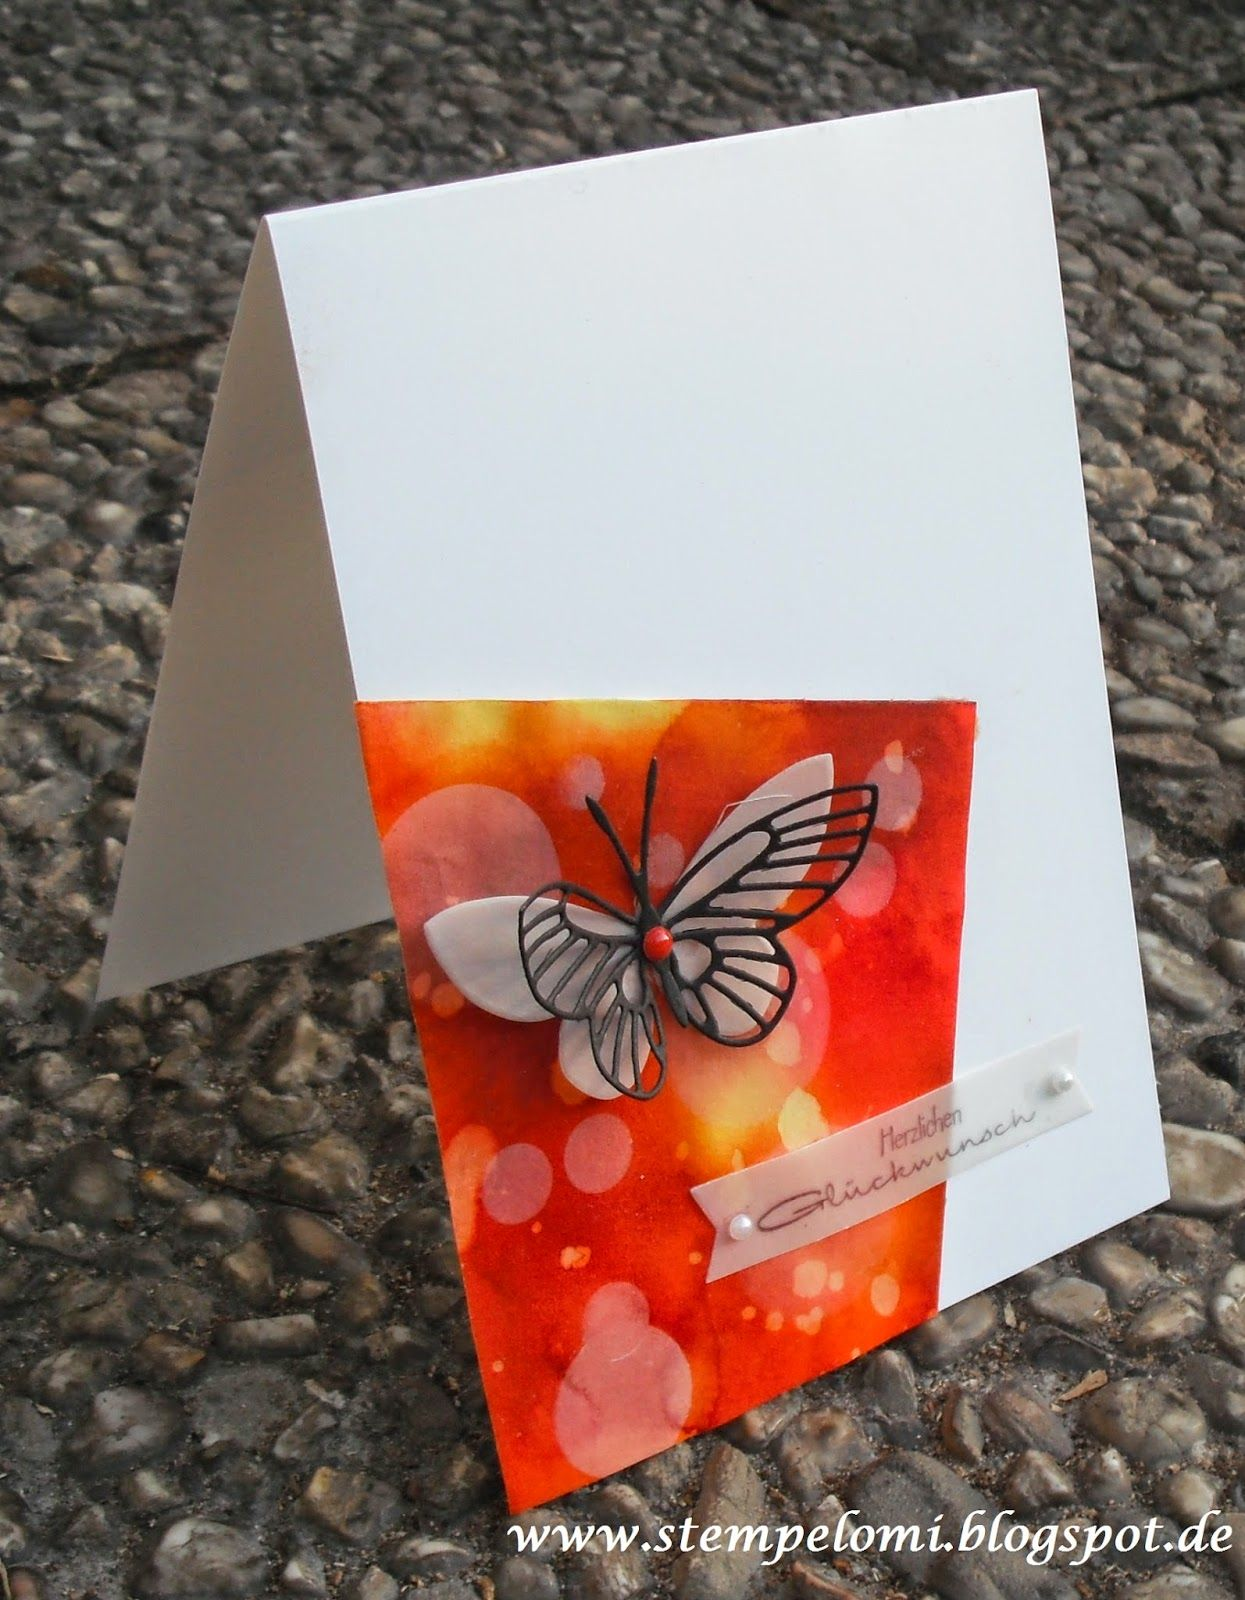 Stempelomis Bastelkeller: Clean and simple bei cards und more